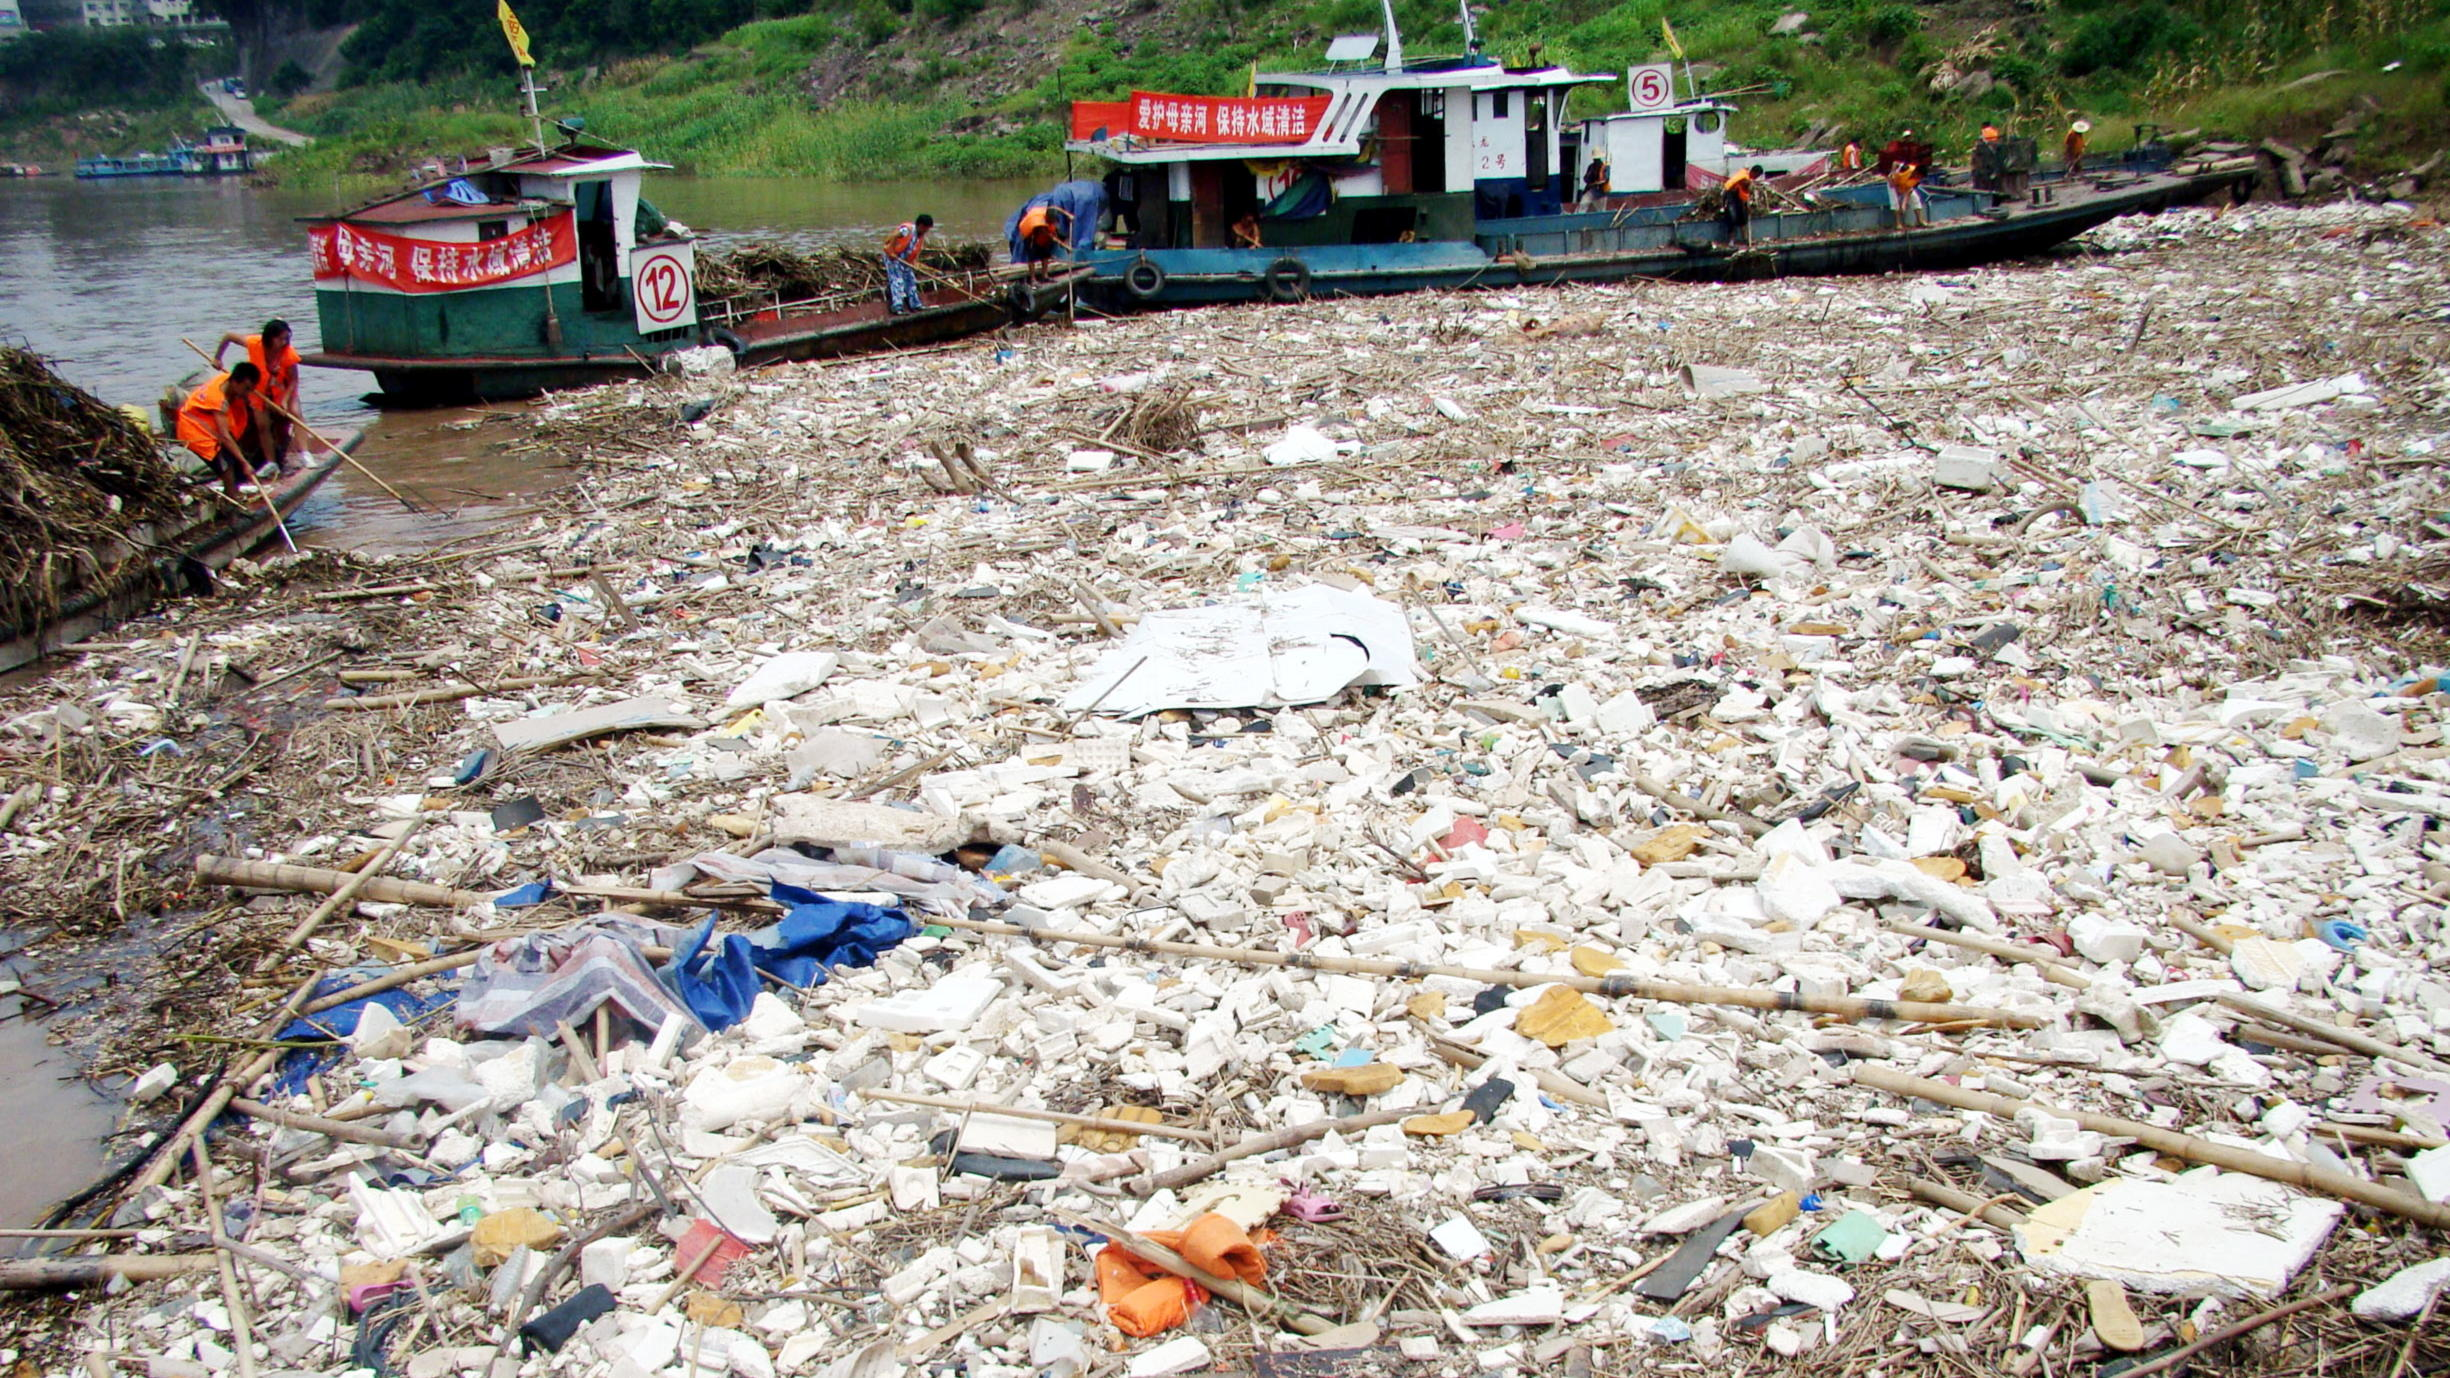 Chinese workers clean up trash floating on the Yangtze River in the Three Gorges reservoir in Yunyang county, Chongqing, China, 25 July 2010. An alarm over massive environmental damage along the Yangtze River and its Three Gorges reservoir has been r